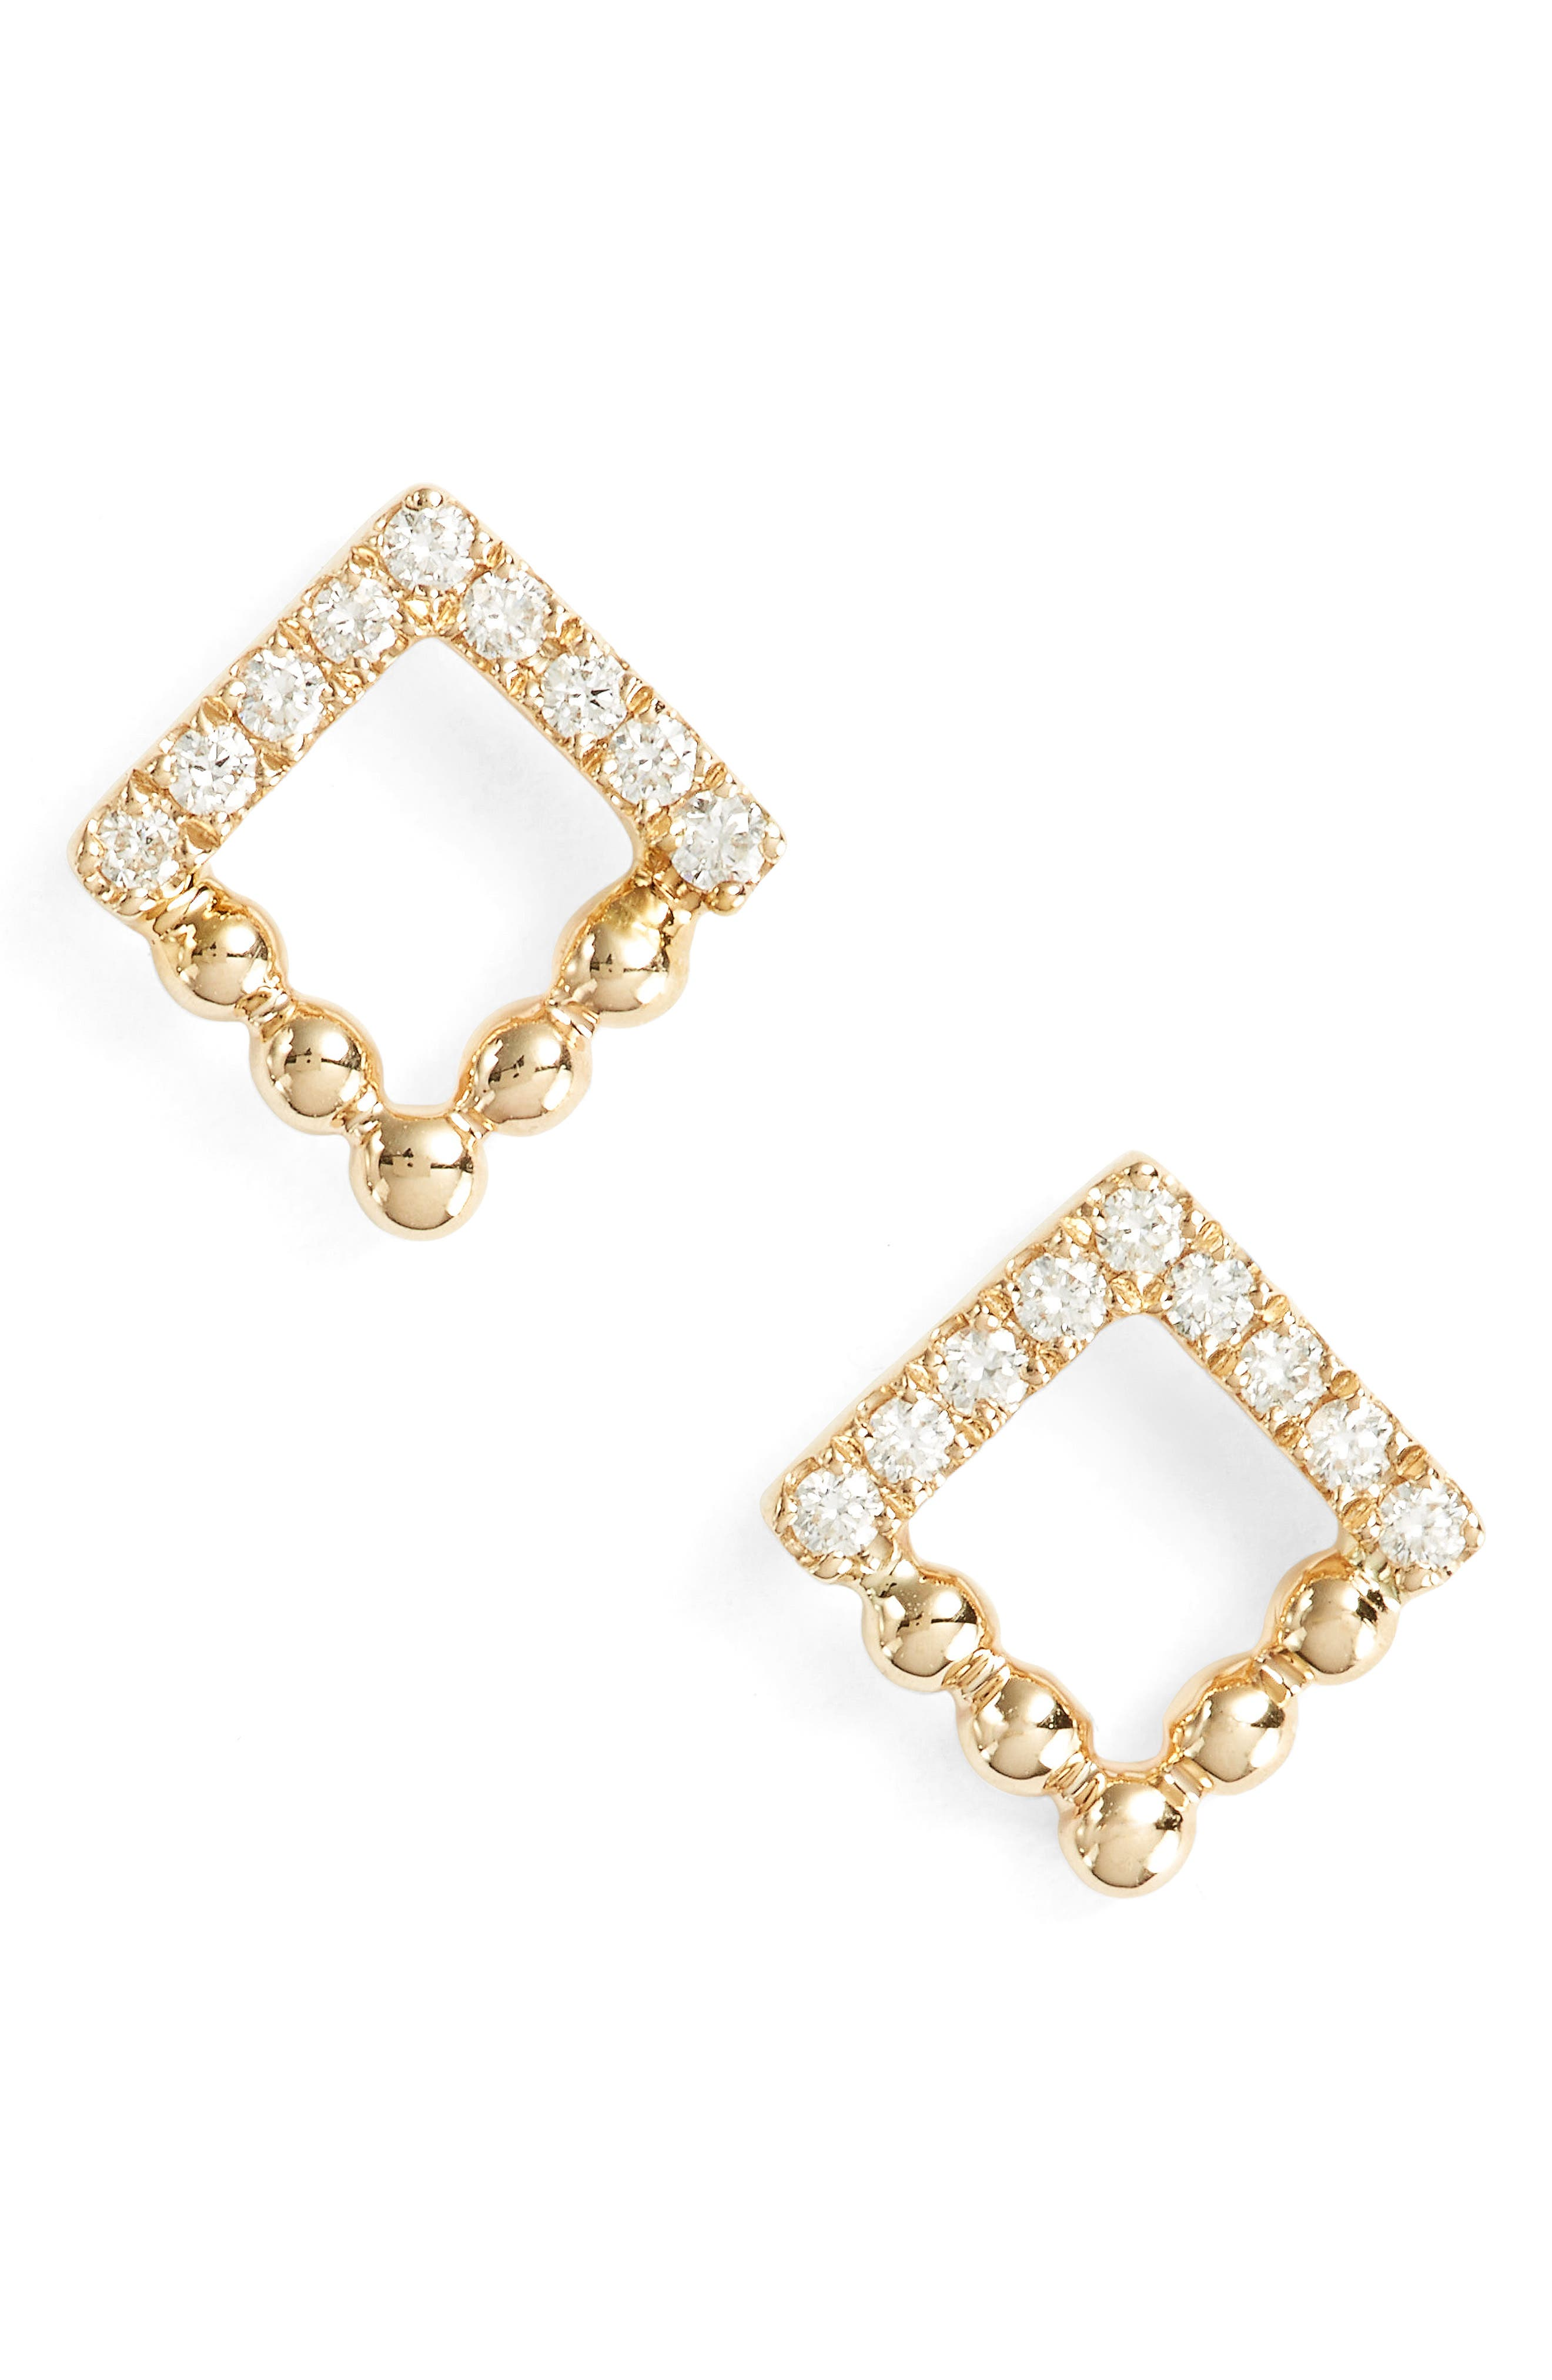 Poppy Rae Square Diamond Stud Earrings,                         Main,                         color, Yellow Gold